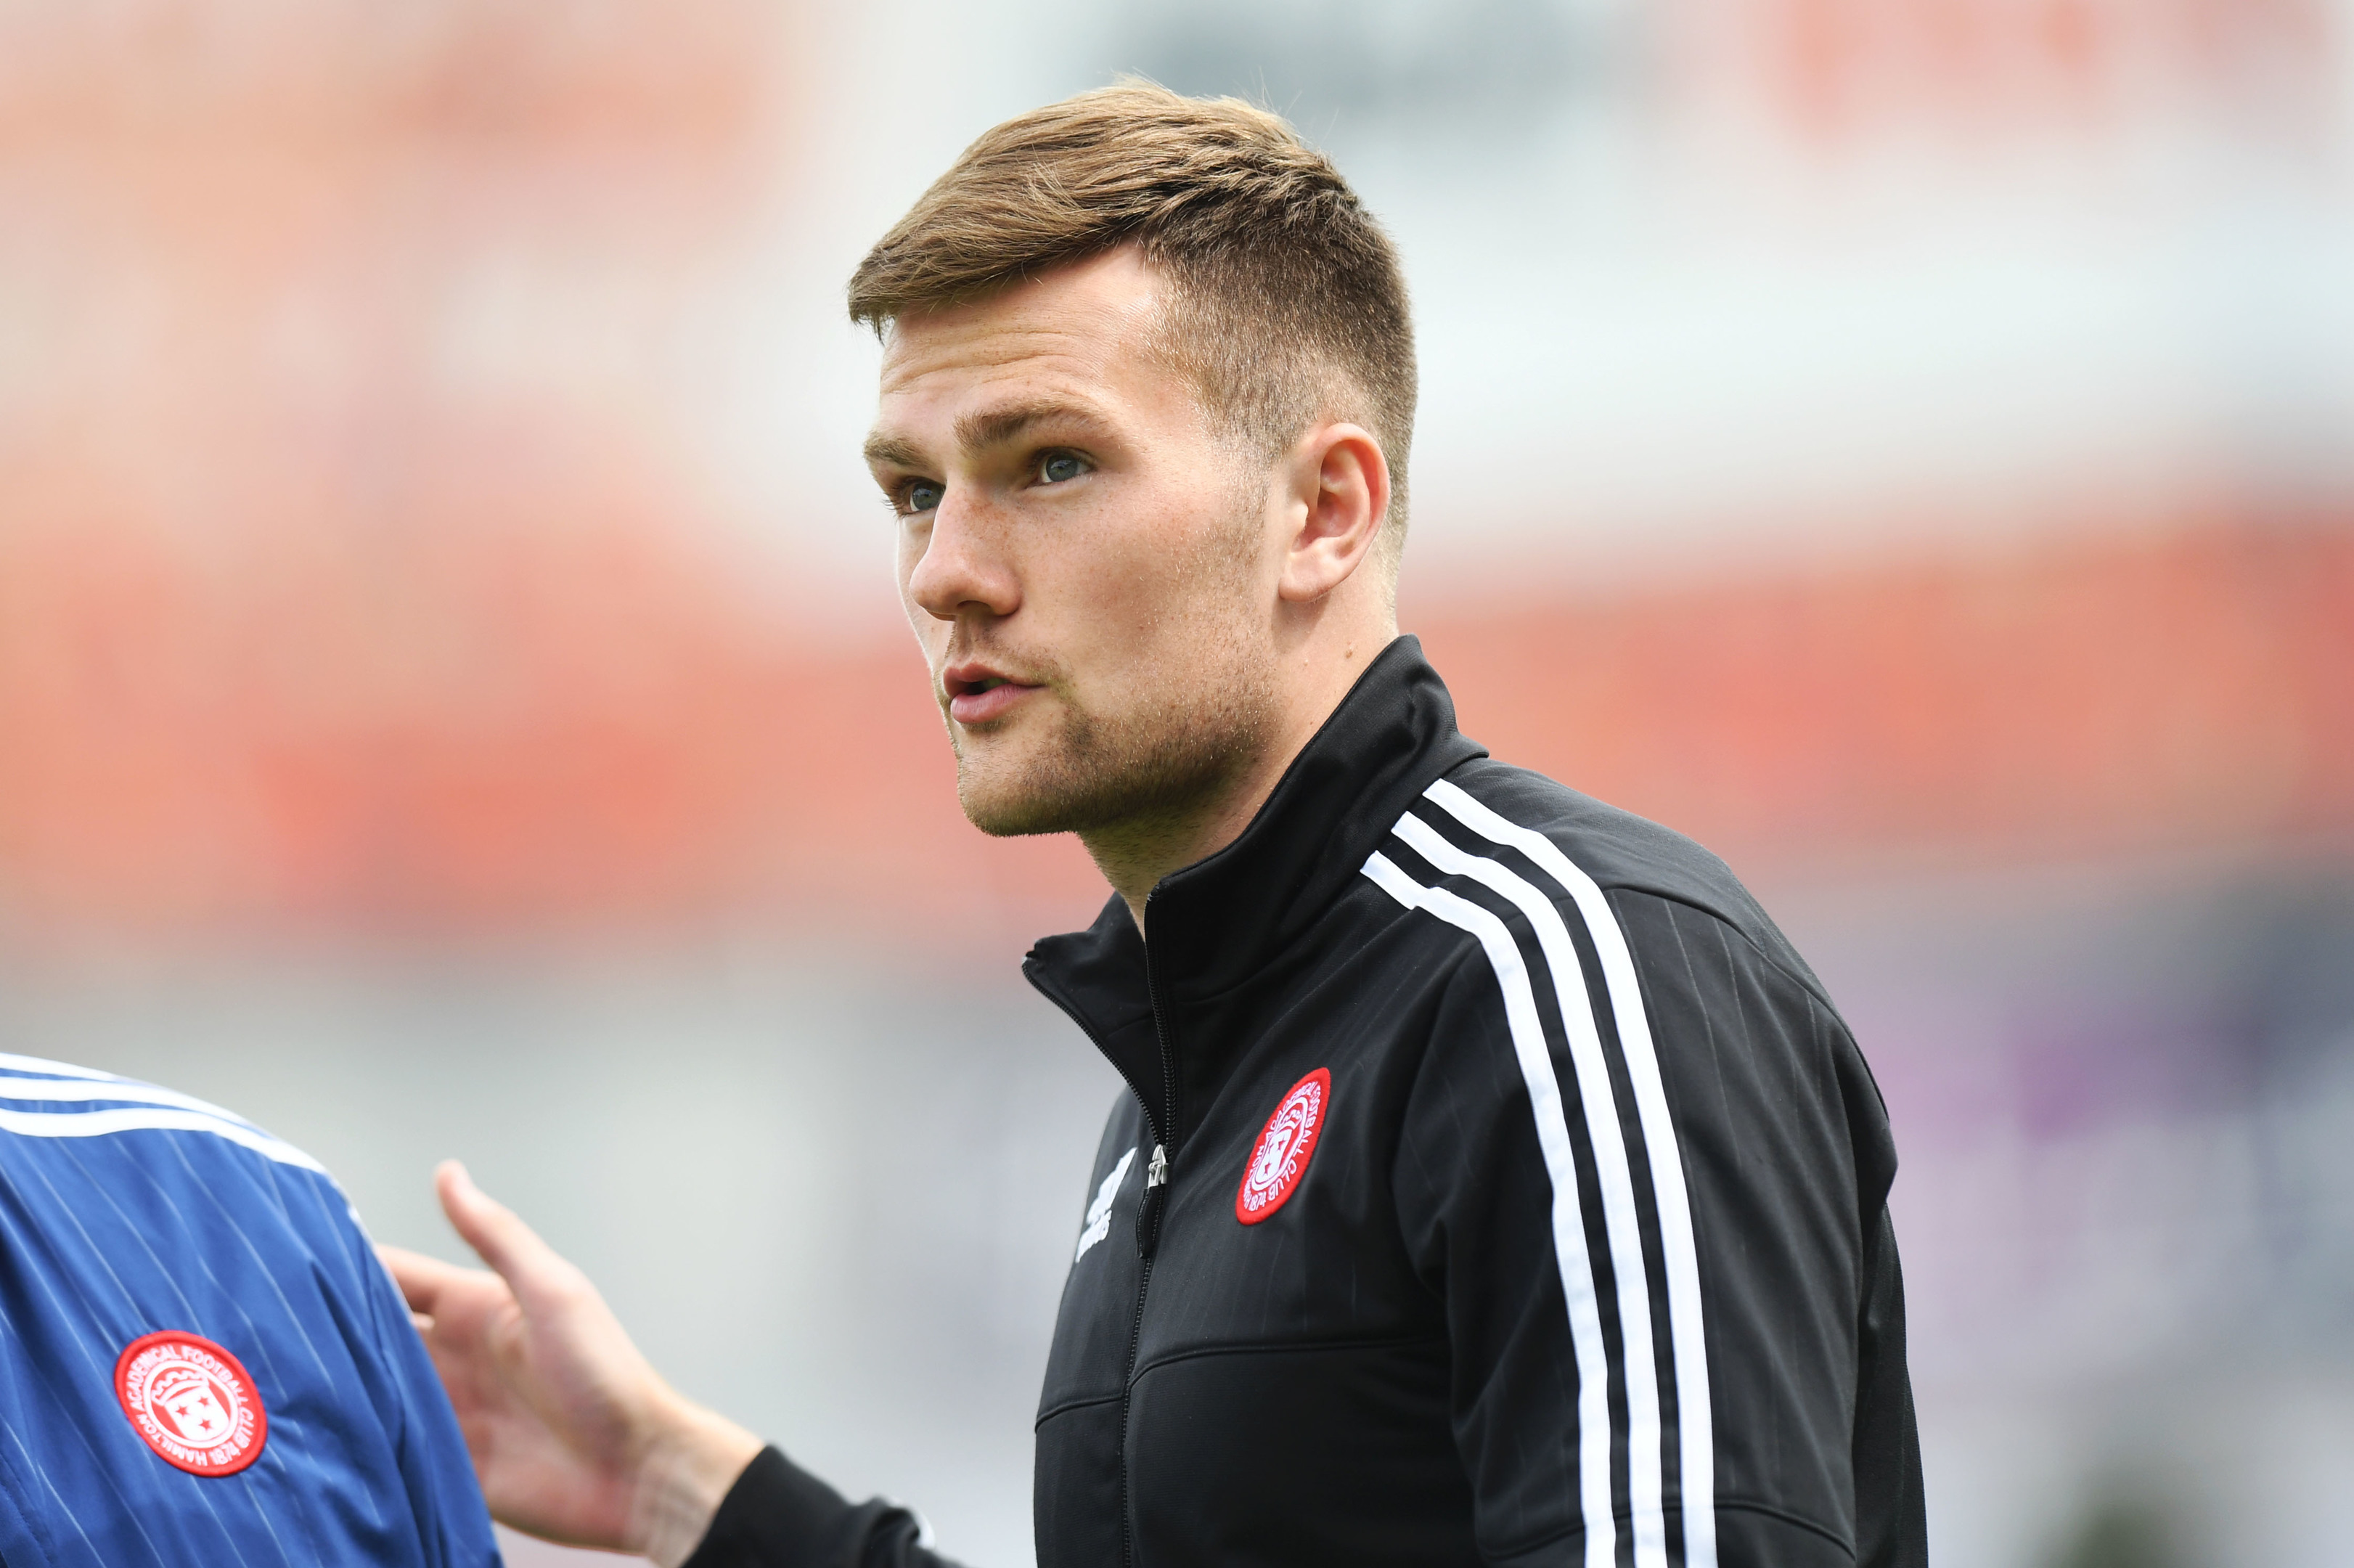 Mikey Devlin signed a three-and-a-half year deal with the Dons.